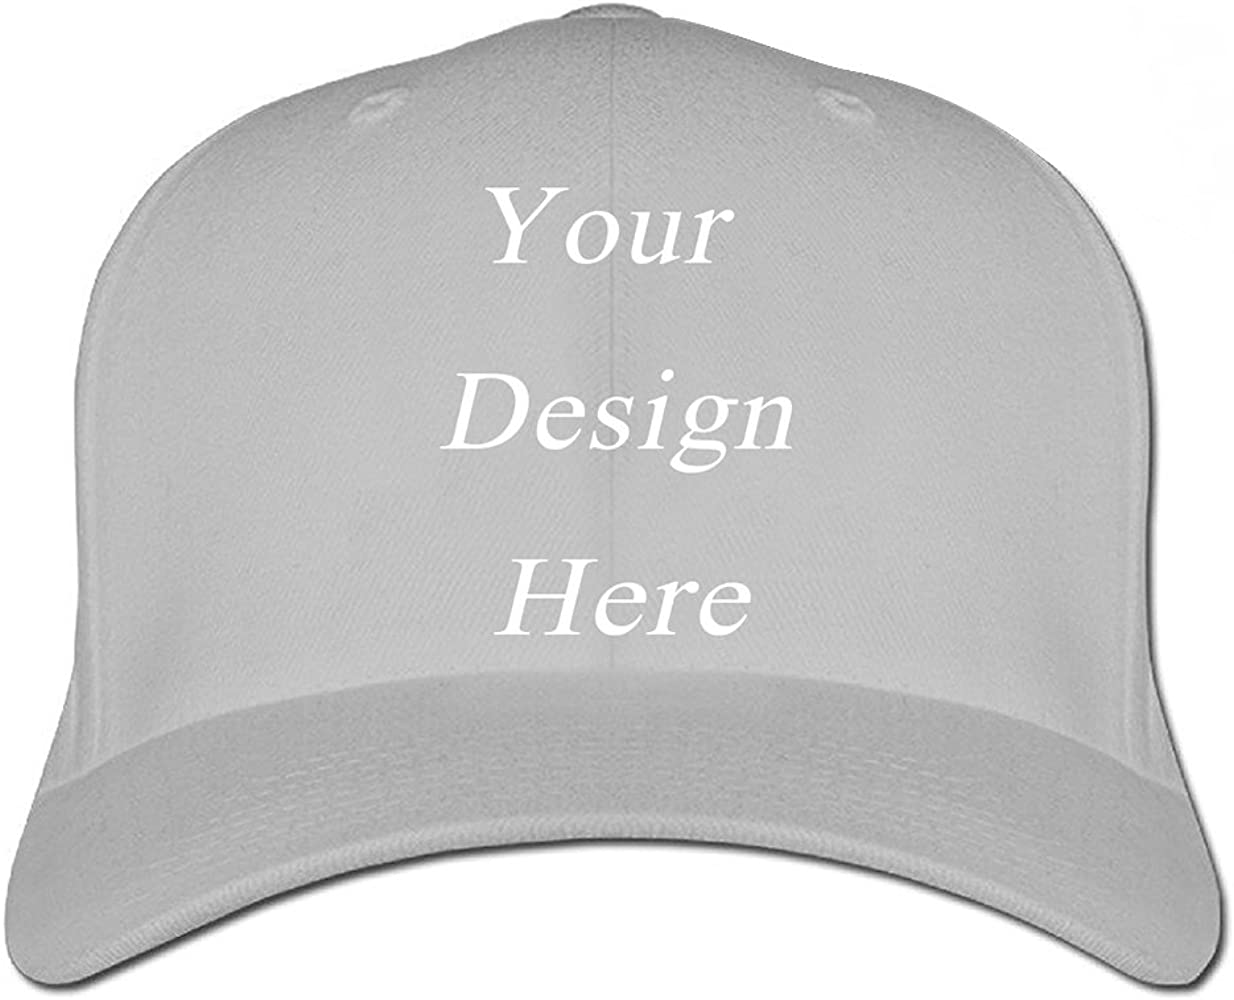 Unisex Sun Visor Dad Hats Personalized Custom Trucker Hats Baseball Caps  Gifts